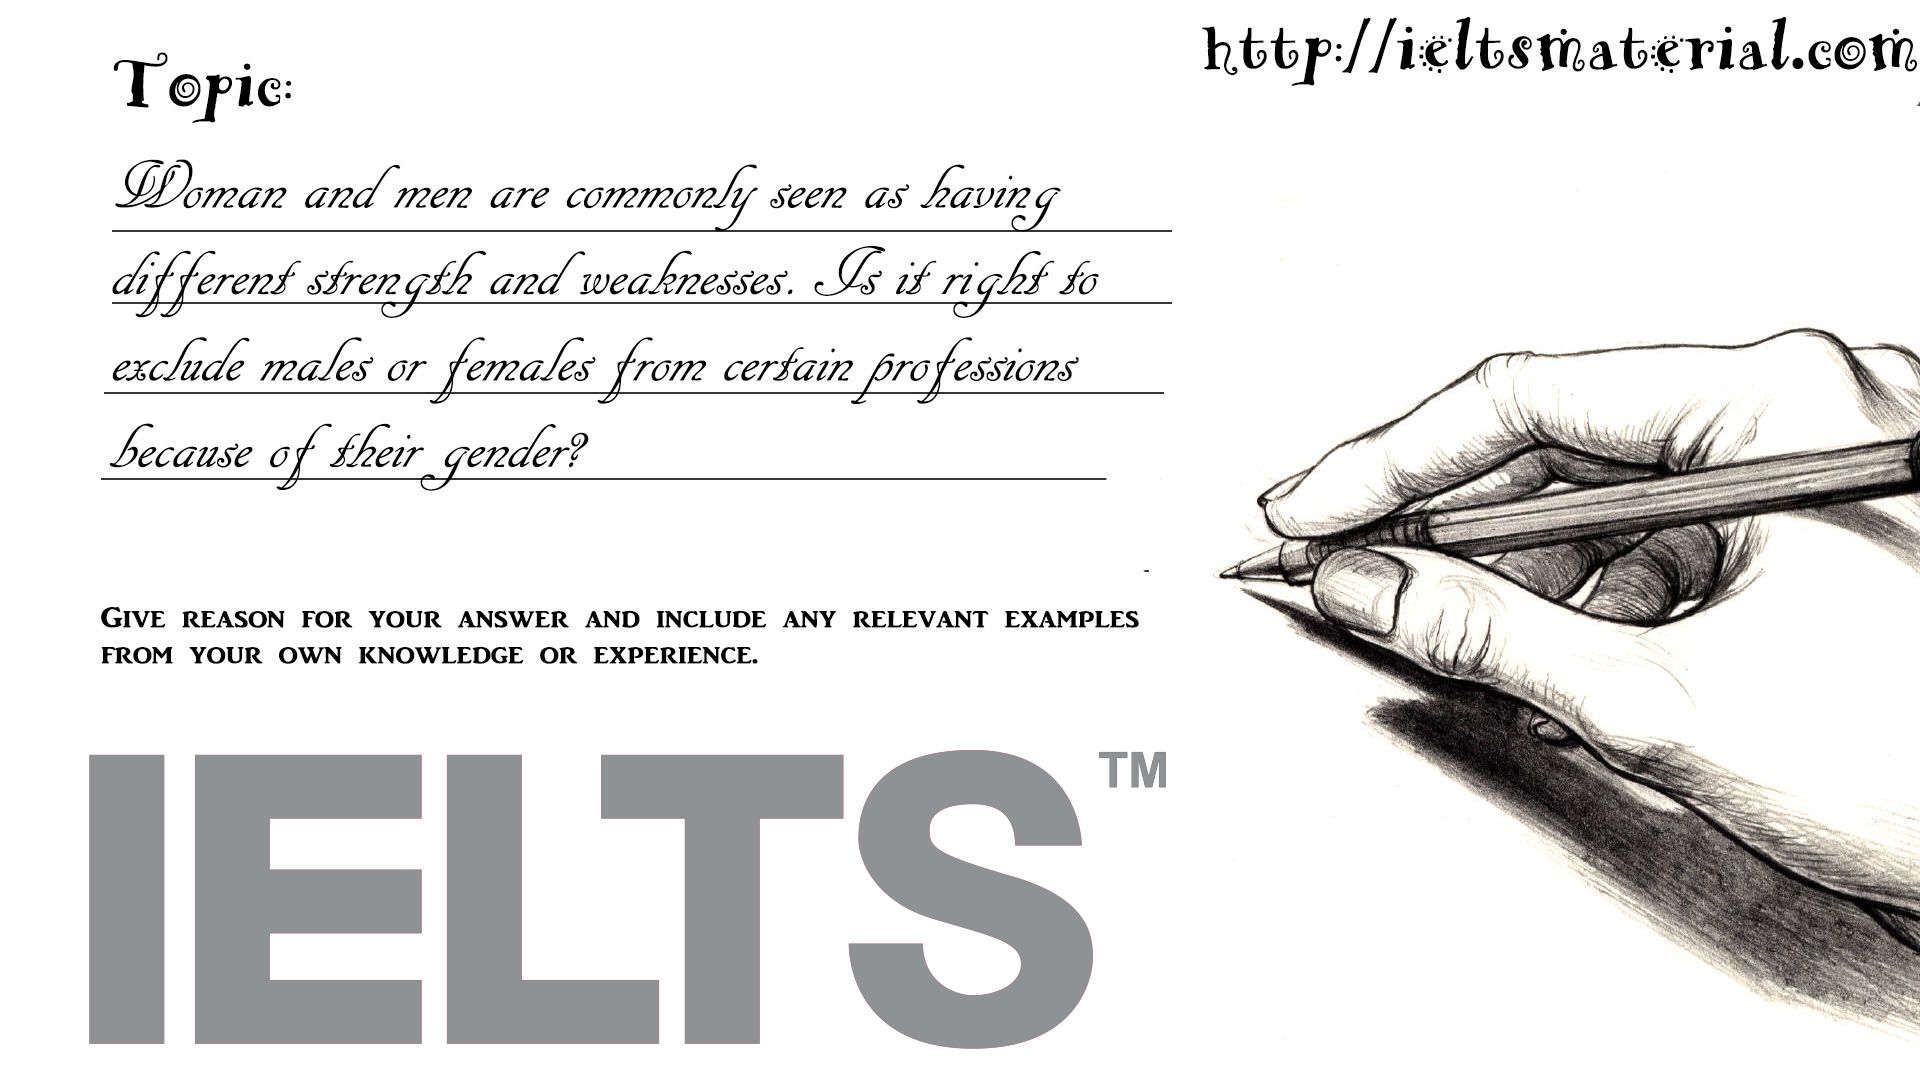 academic ielts writing task 2 topic 07 allaboutielts academic ielts writing task 2 topic 07 allaboutielts writing